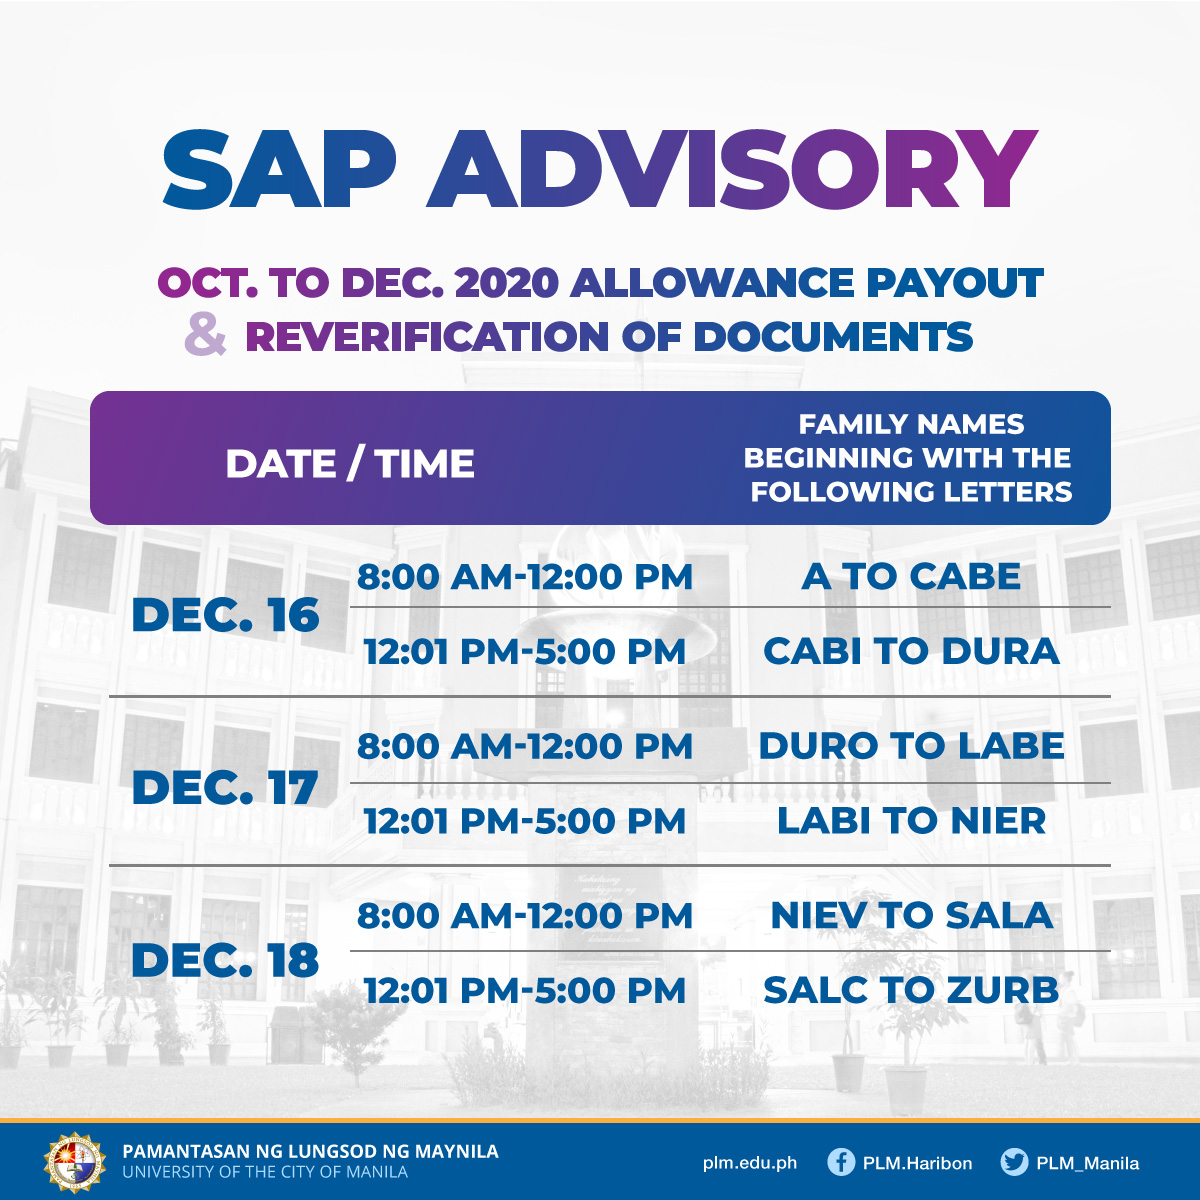 PLM vows timely release of student SAP payouts for remaining distribution days